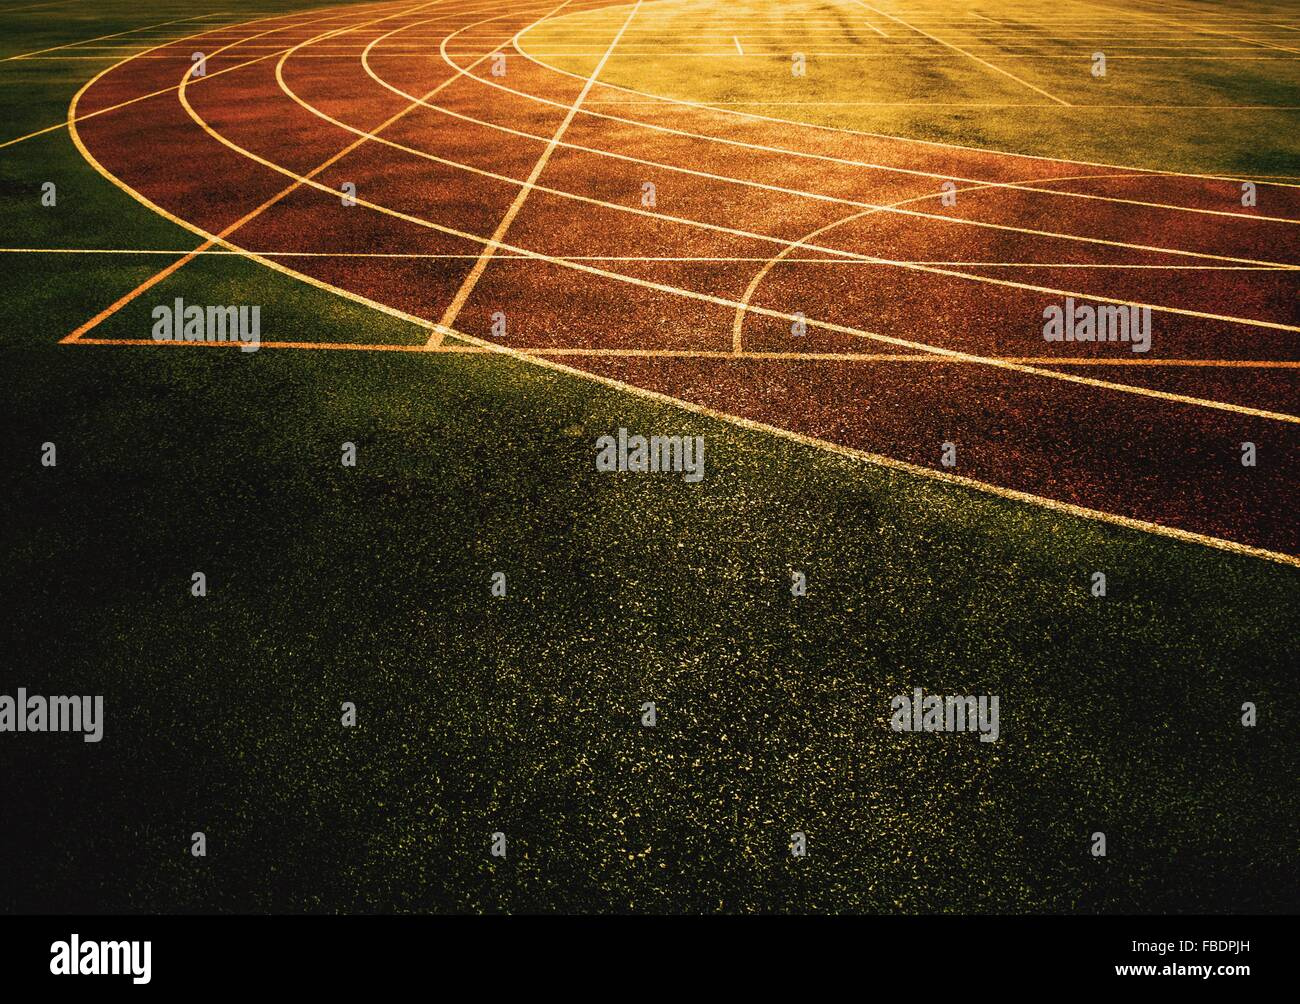 High Angle View Of Track And Field - Stock Image